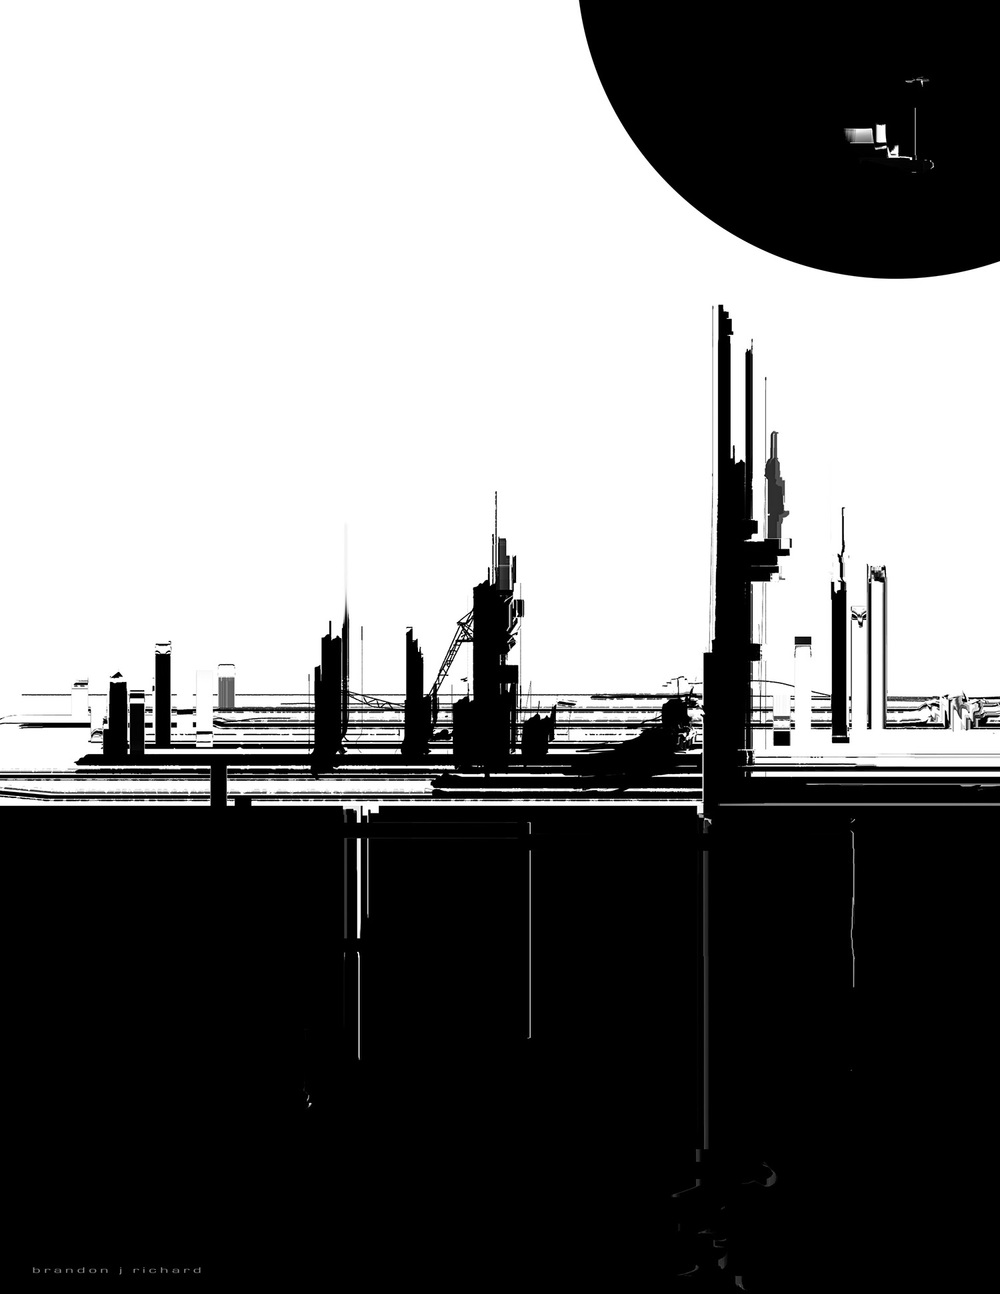 Future Derelict City_smudge.jpg